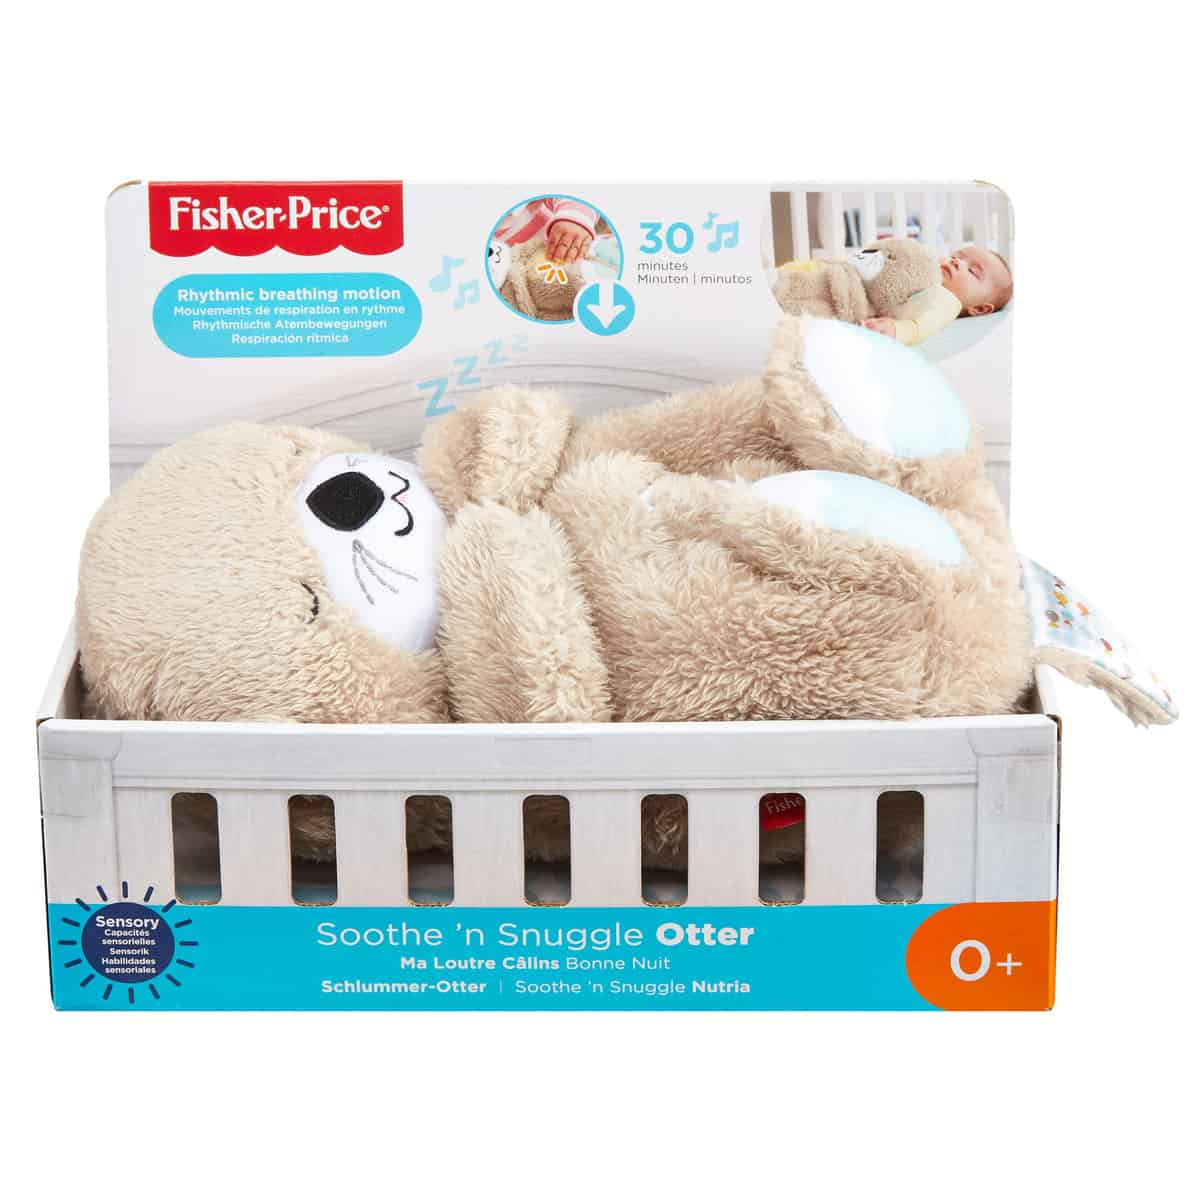 Fisher Price Soothe n Snuggle Otter